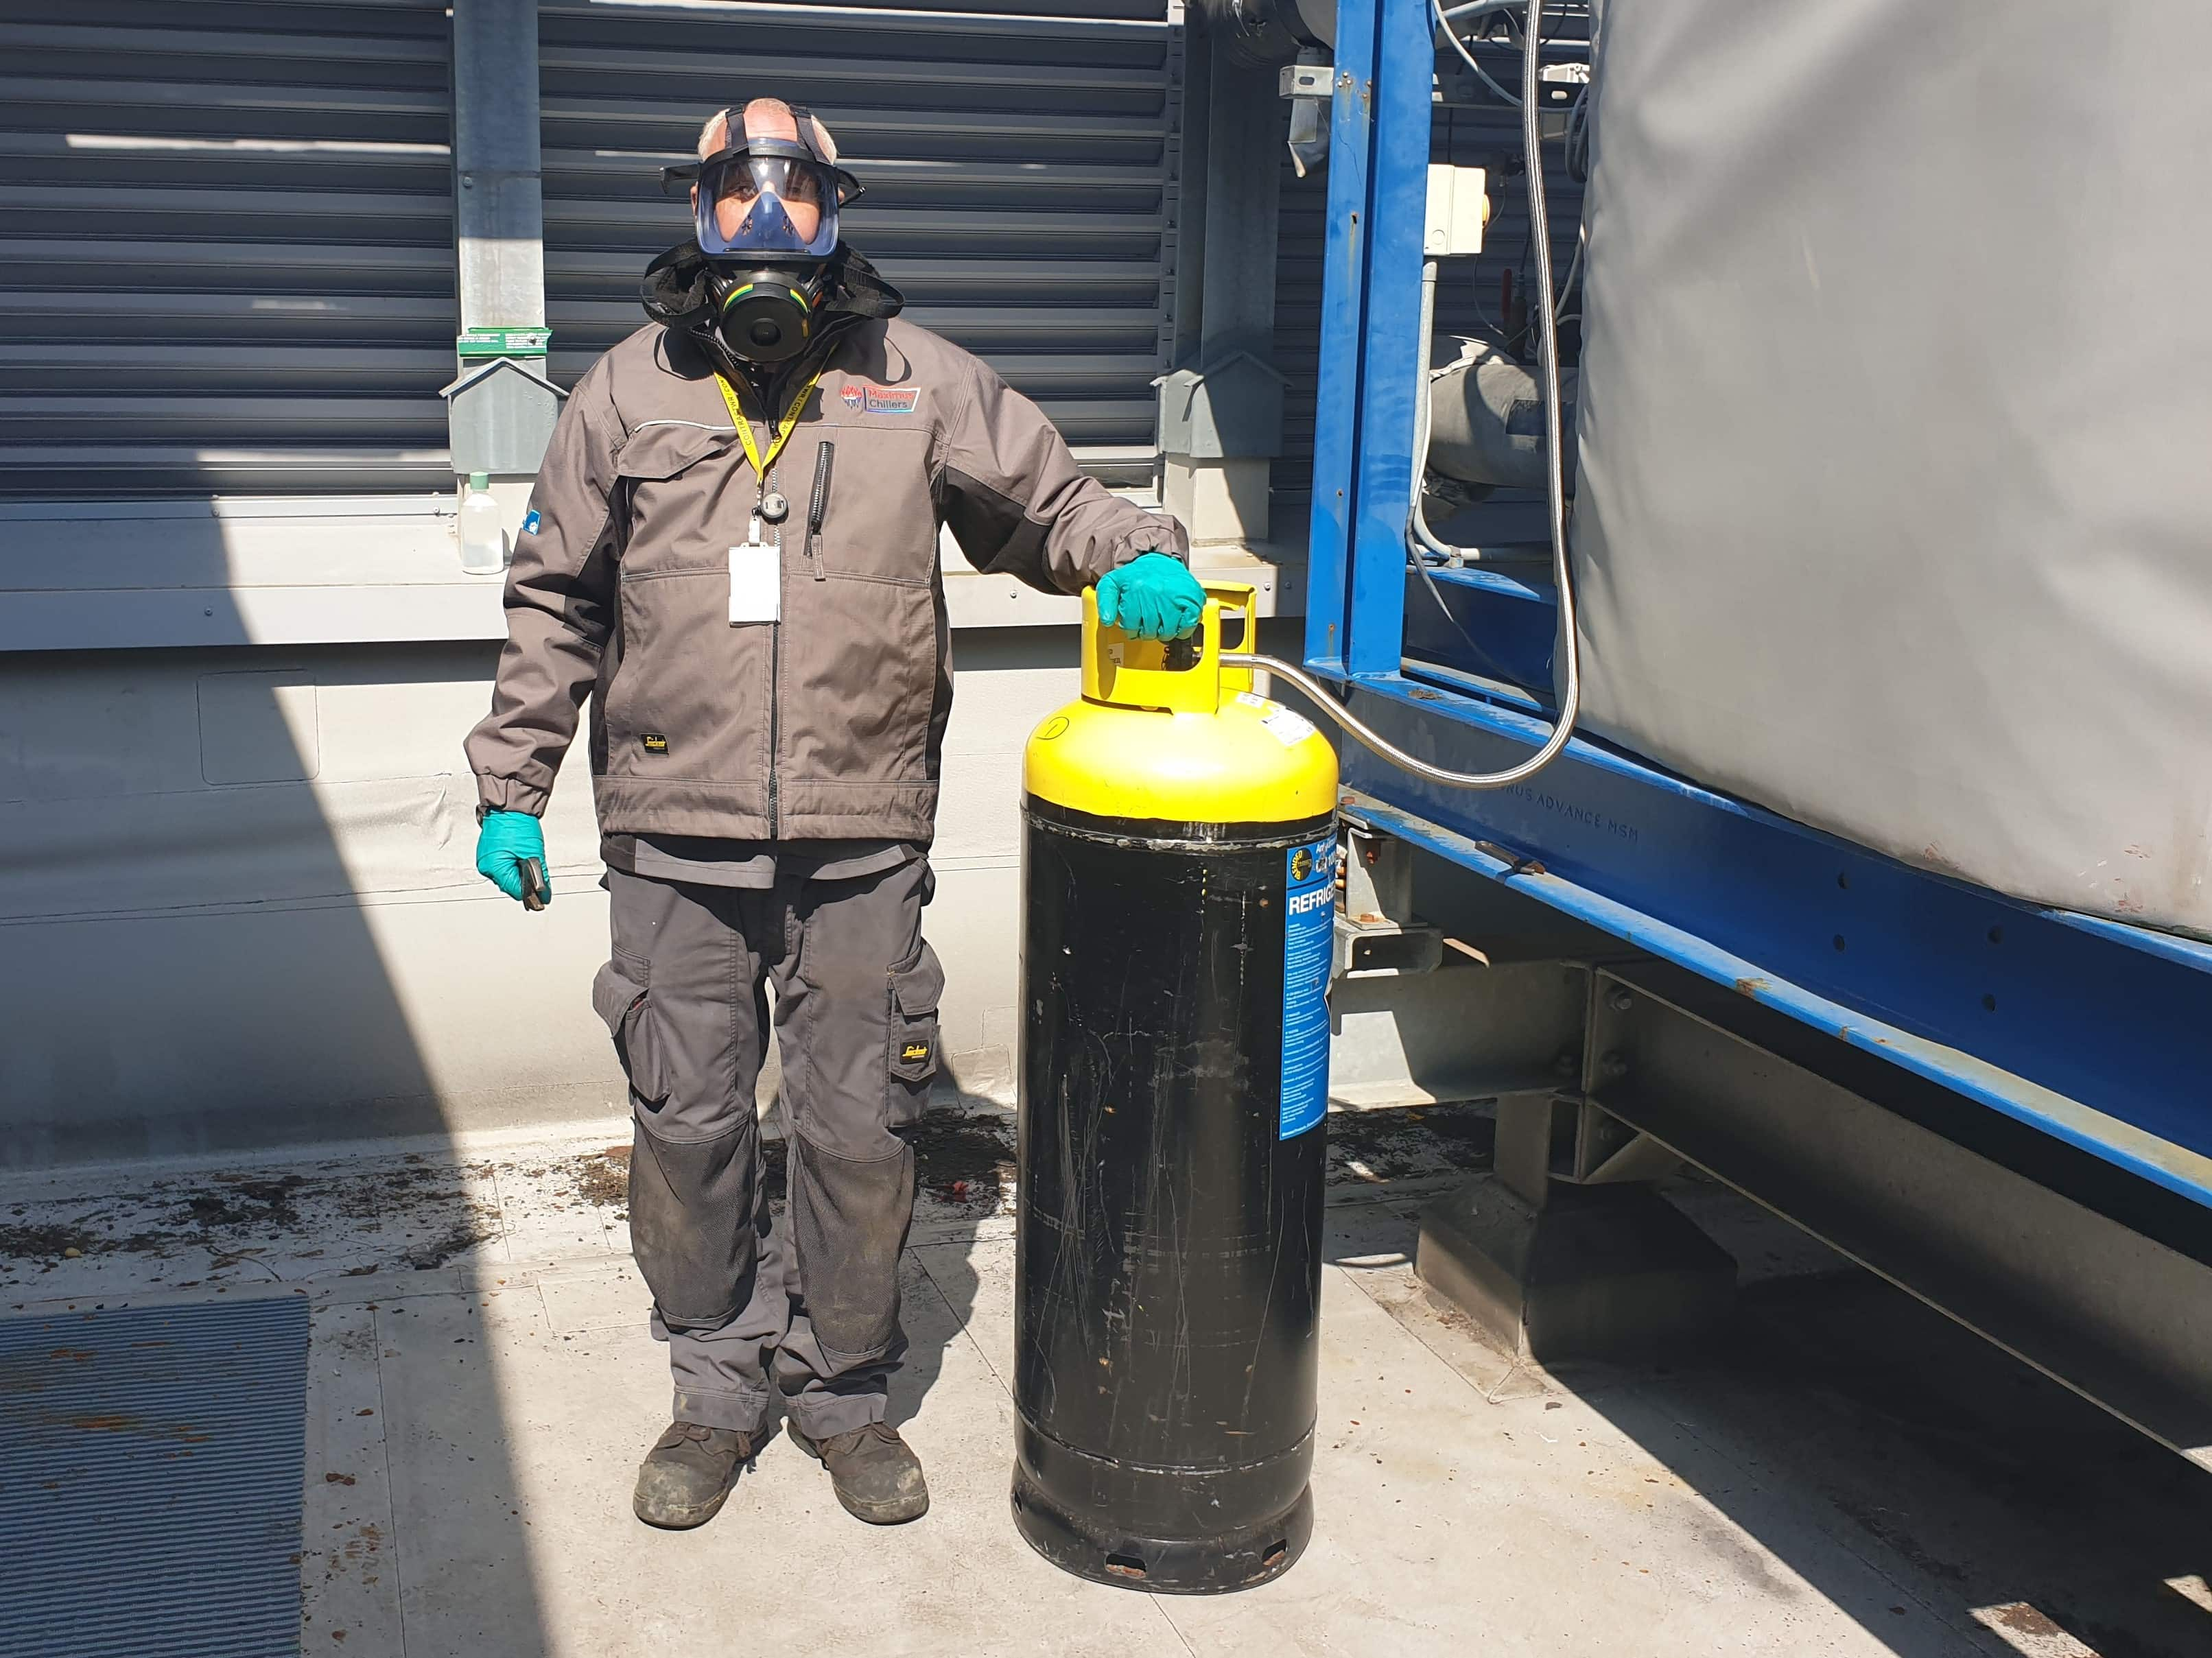 Industrial refrigeration ammonia being charged by an engineer wearing breathing apparatus and gloves